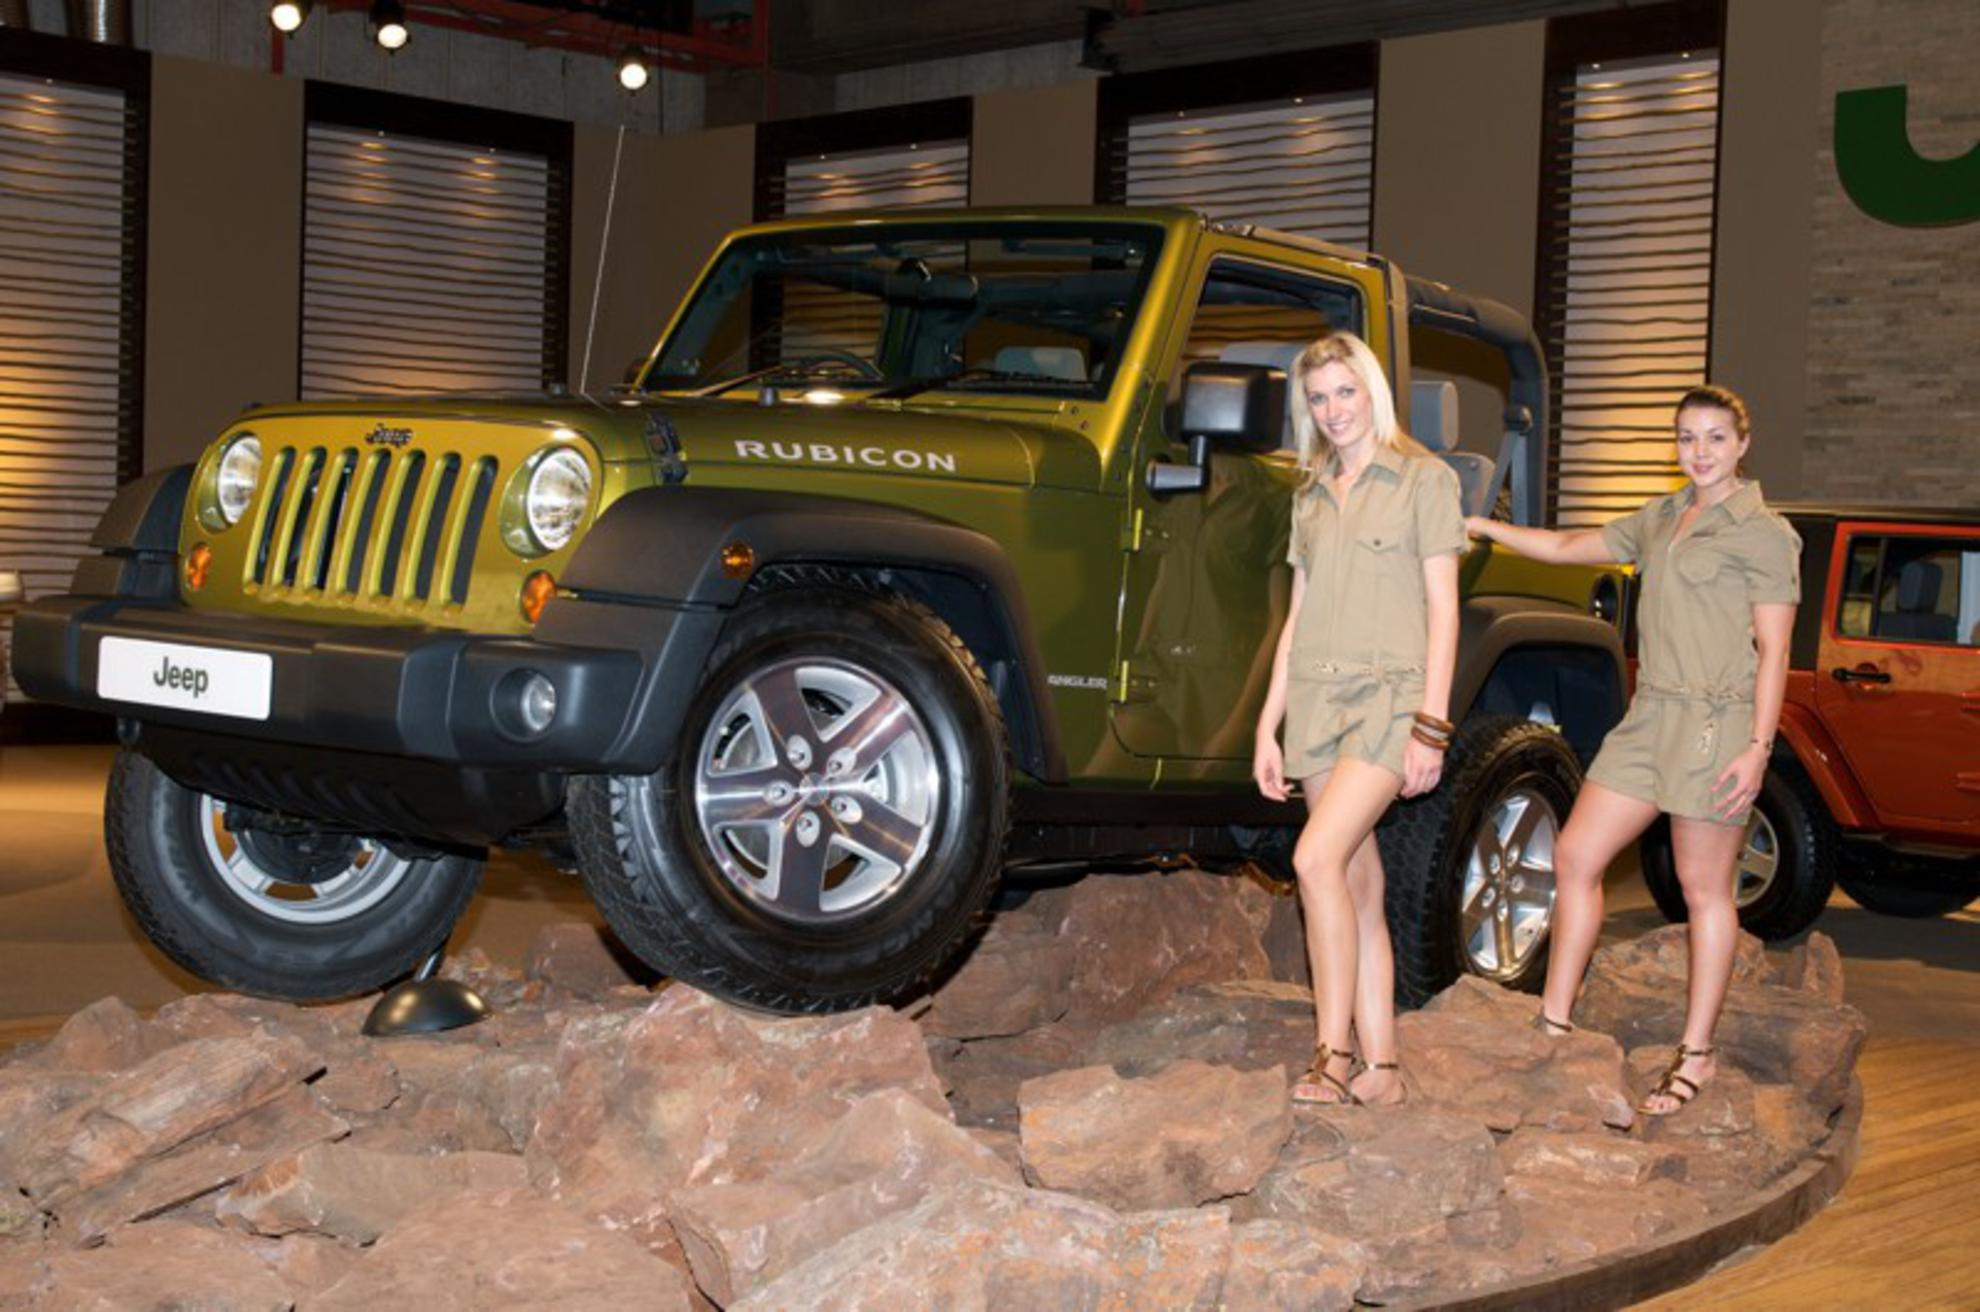 jeep car shows jeep at the motor show jeep 2008. Cars Review. Best American Auto & Cars Review